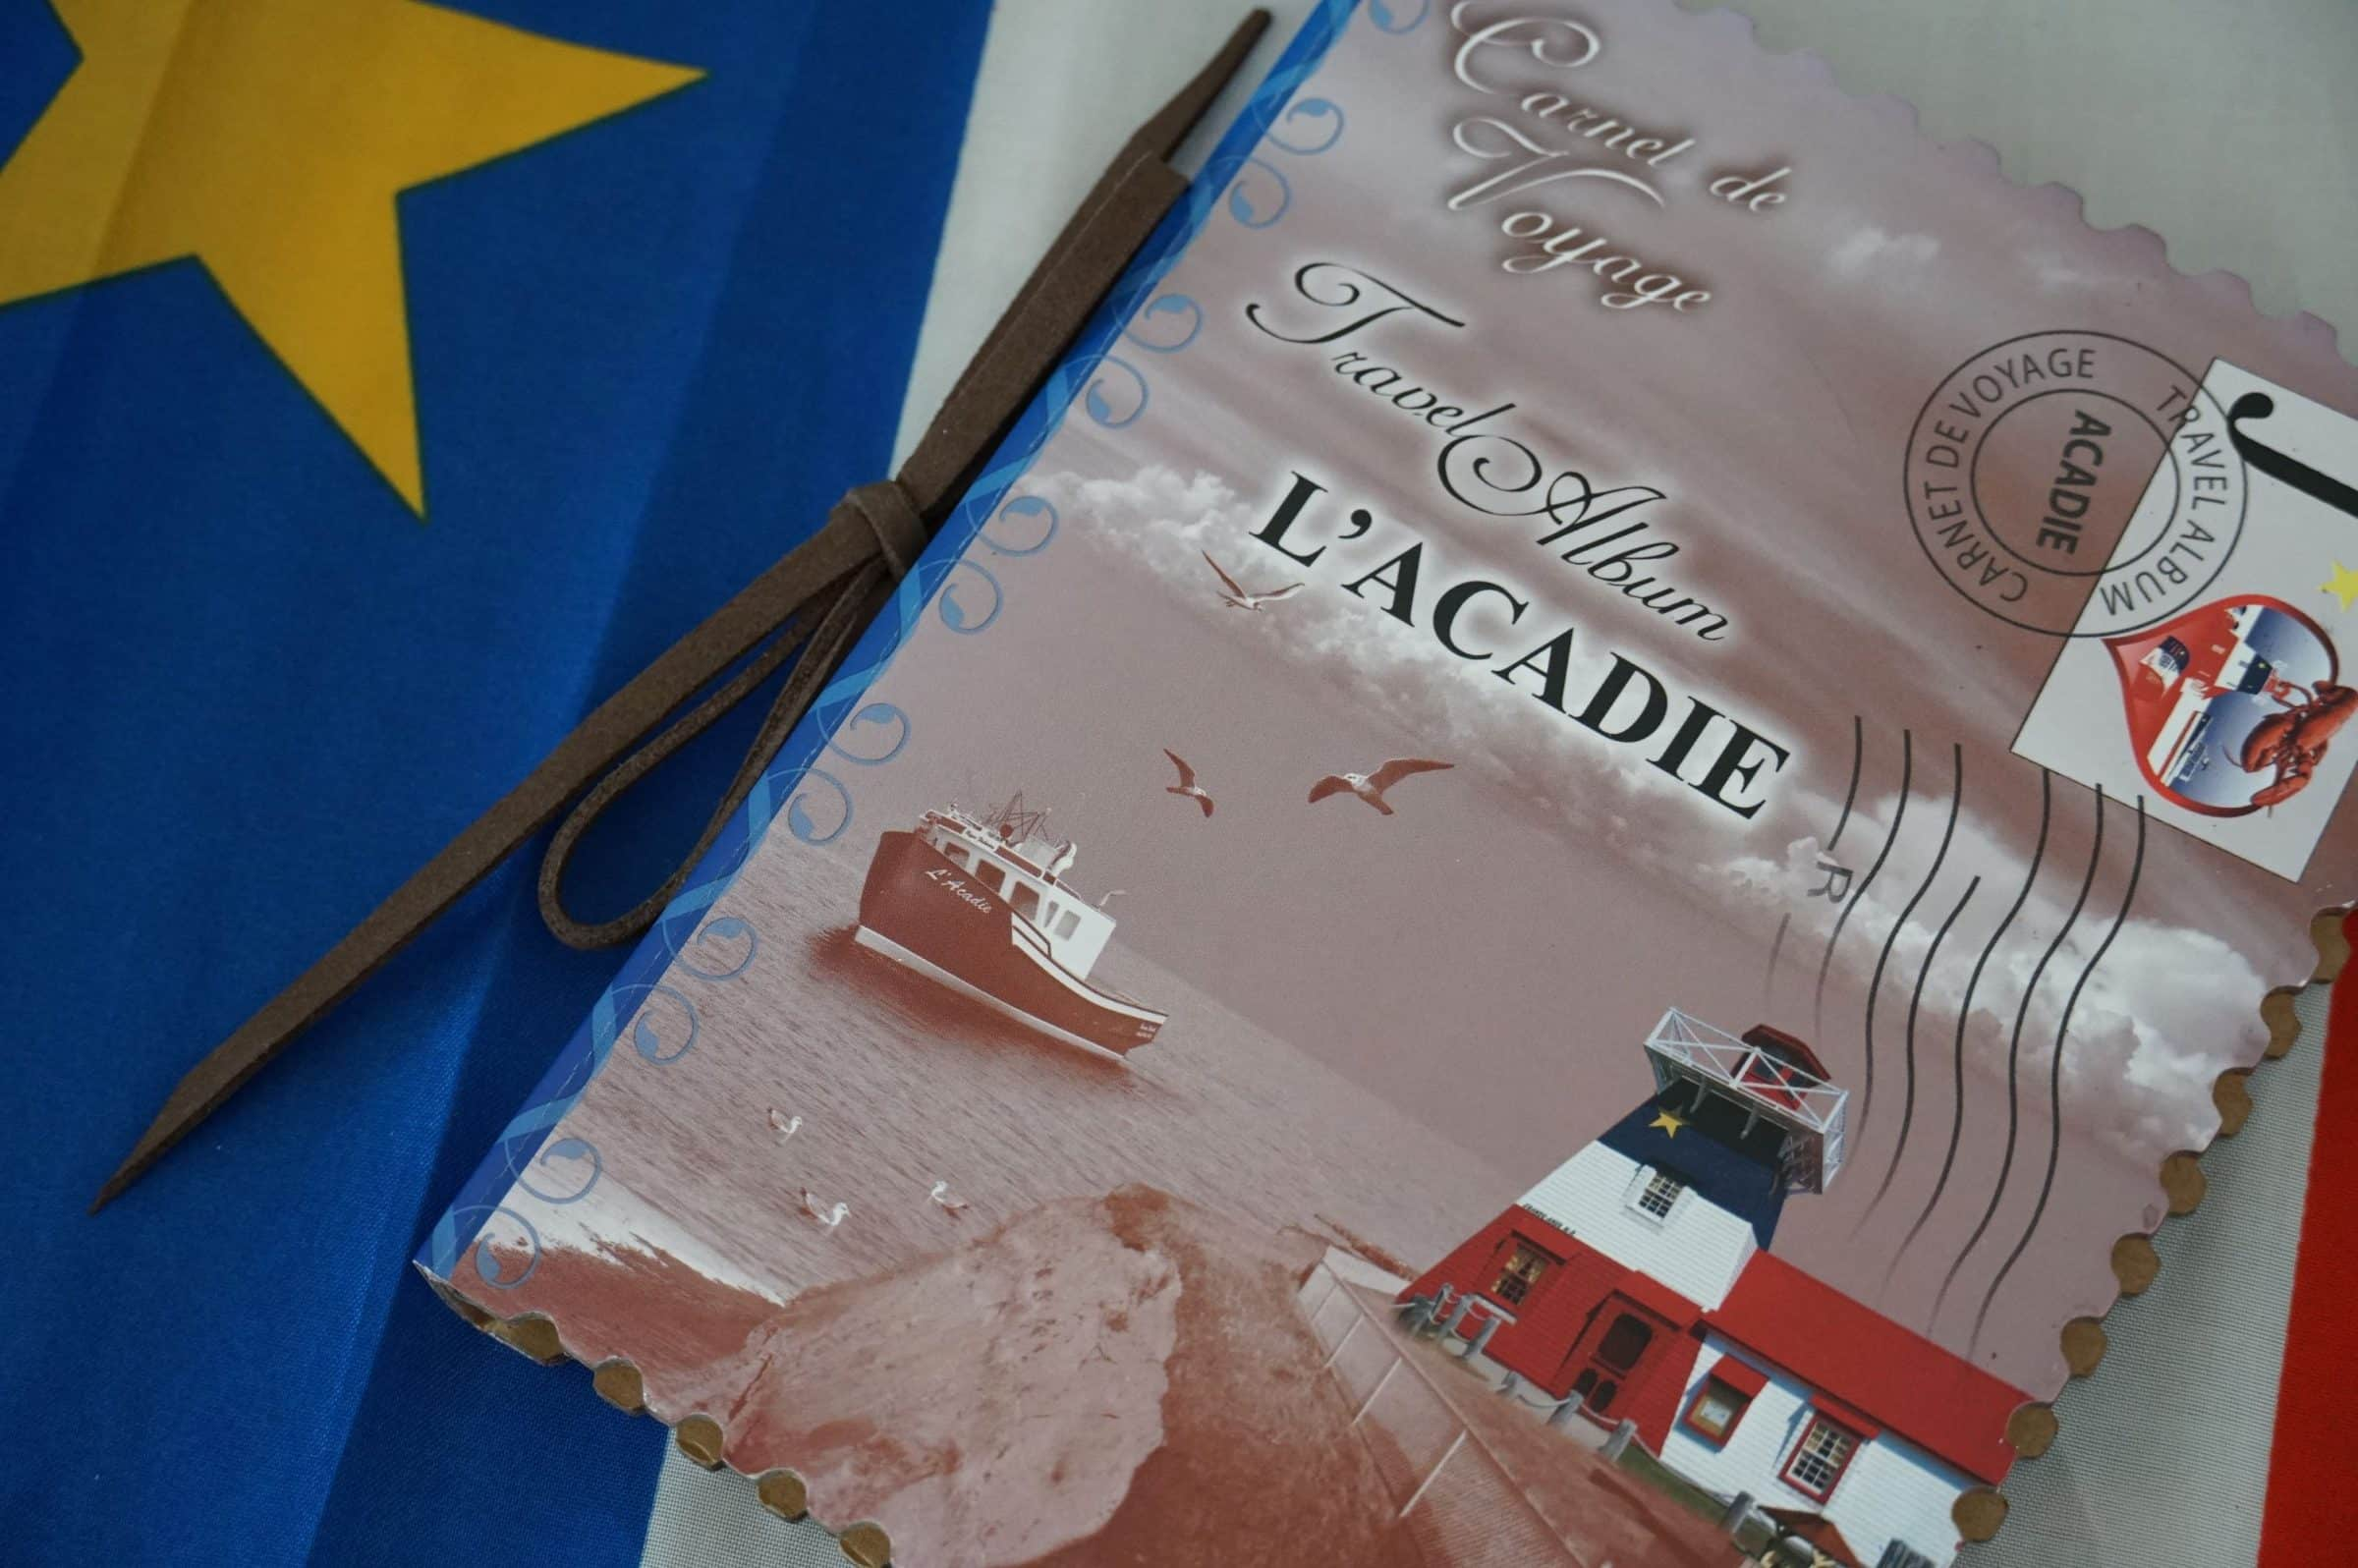 Acadie Notebook